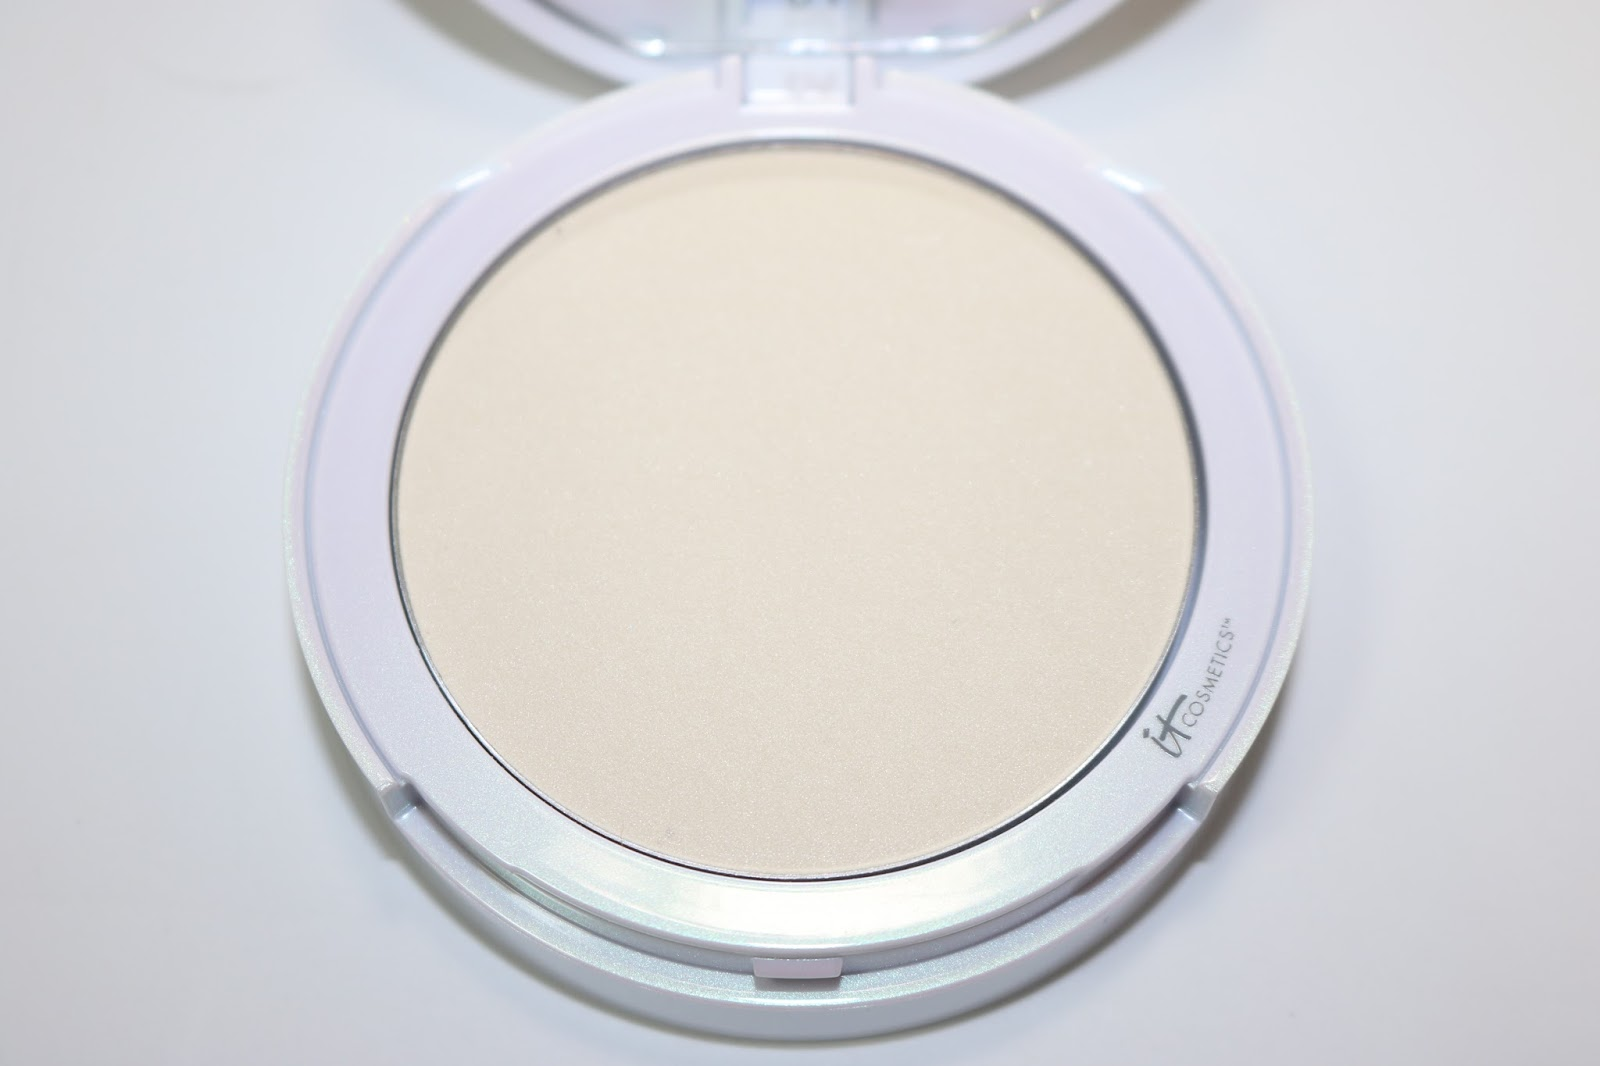 IT Cosmetics Bye Bye Pores Illumination Poreless Finish Pressed Powder